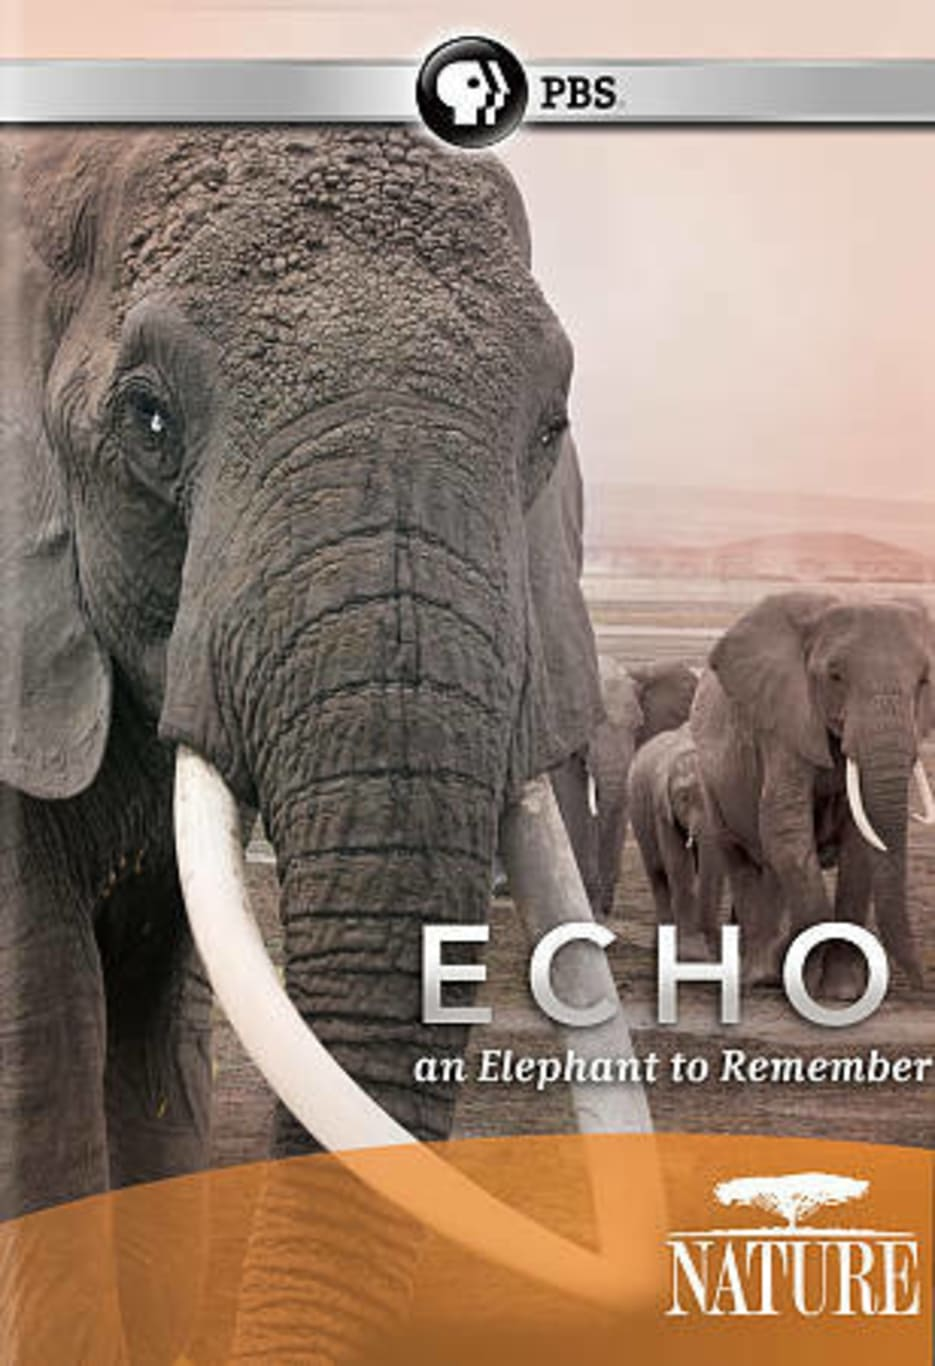 Nature: Echo An Elephant to Remember (2010)